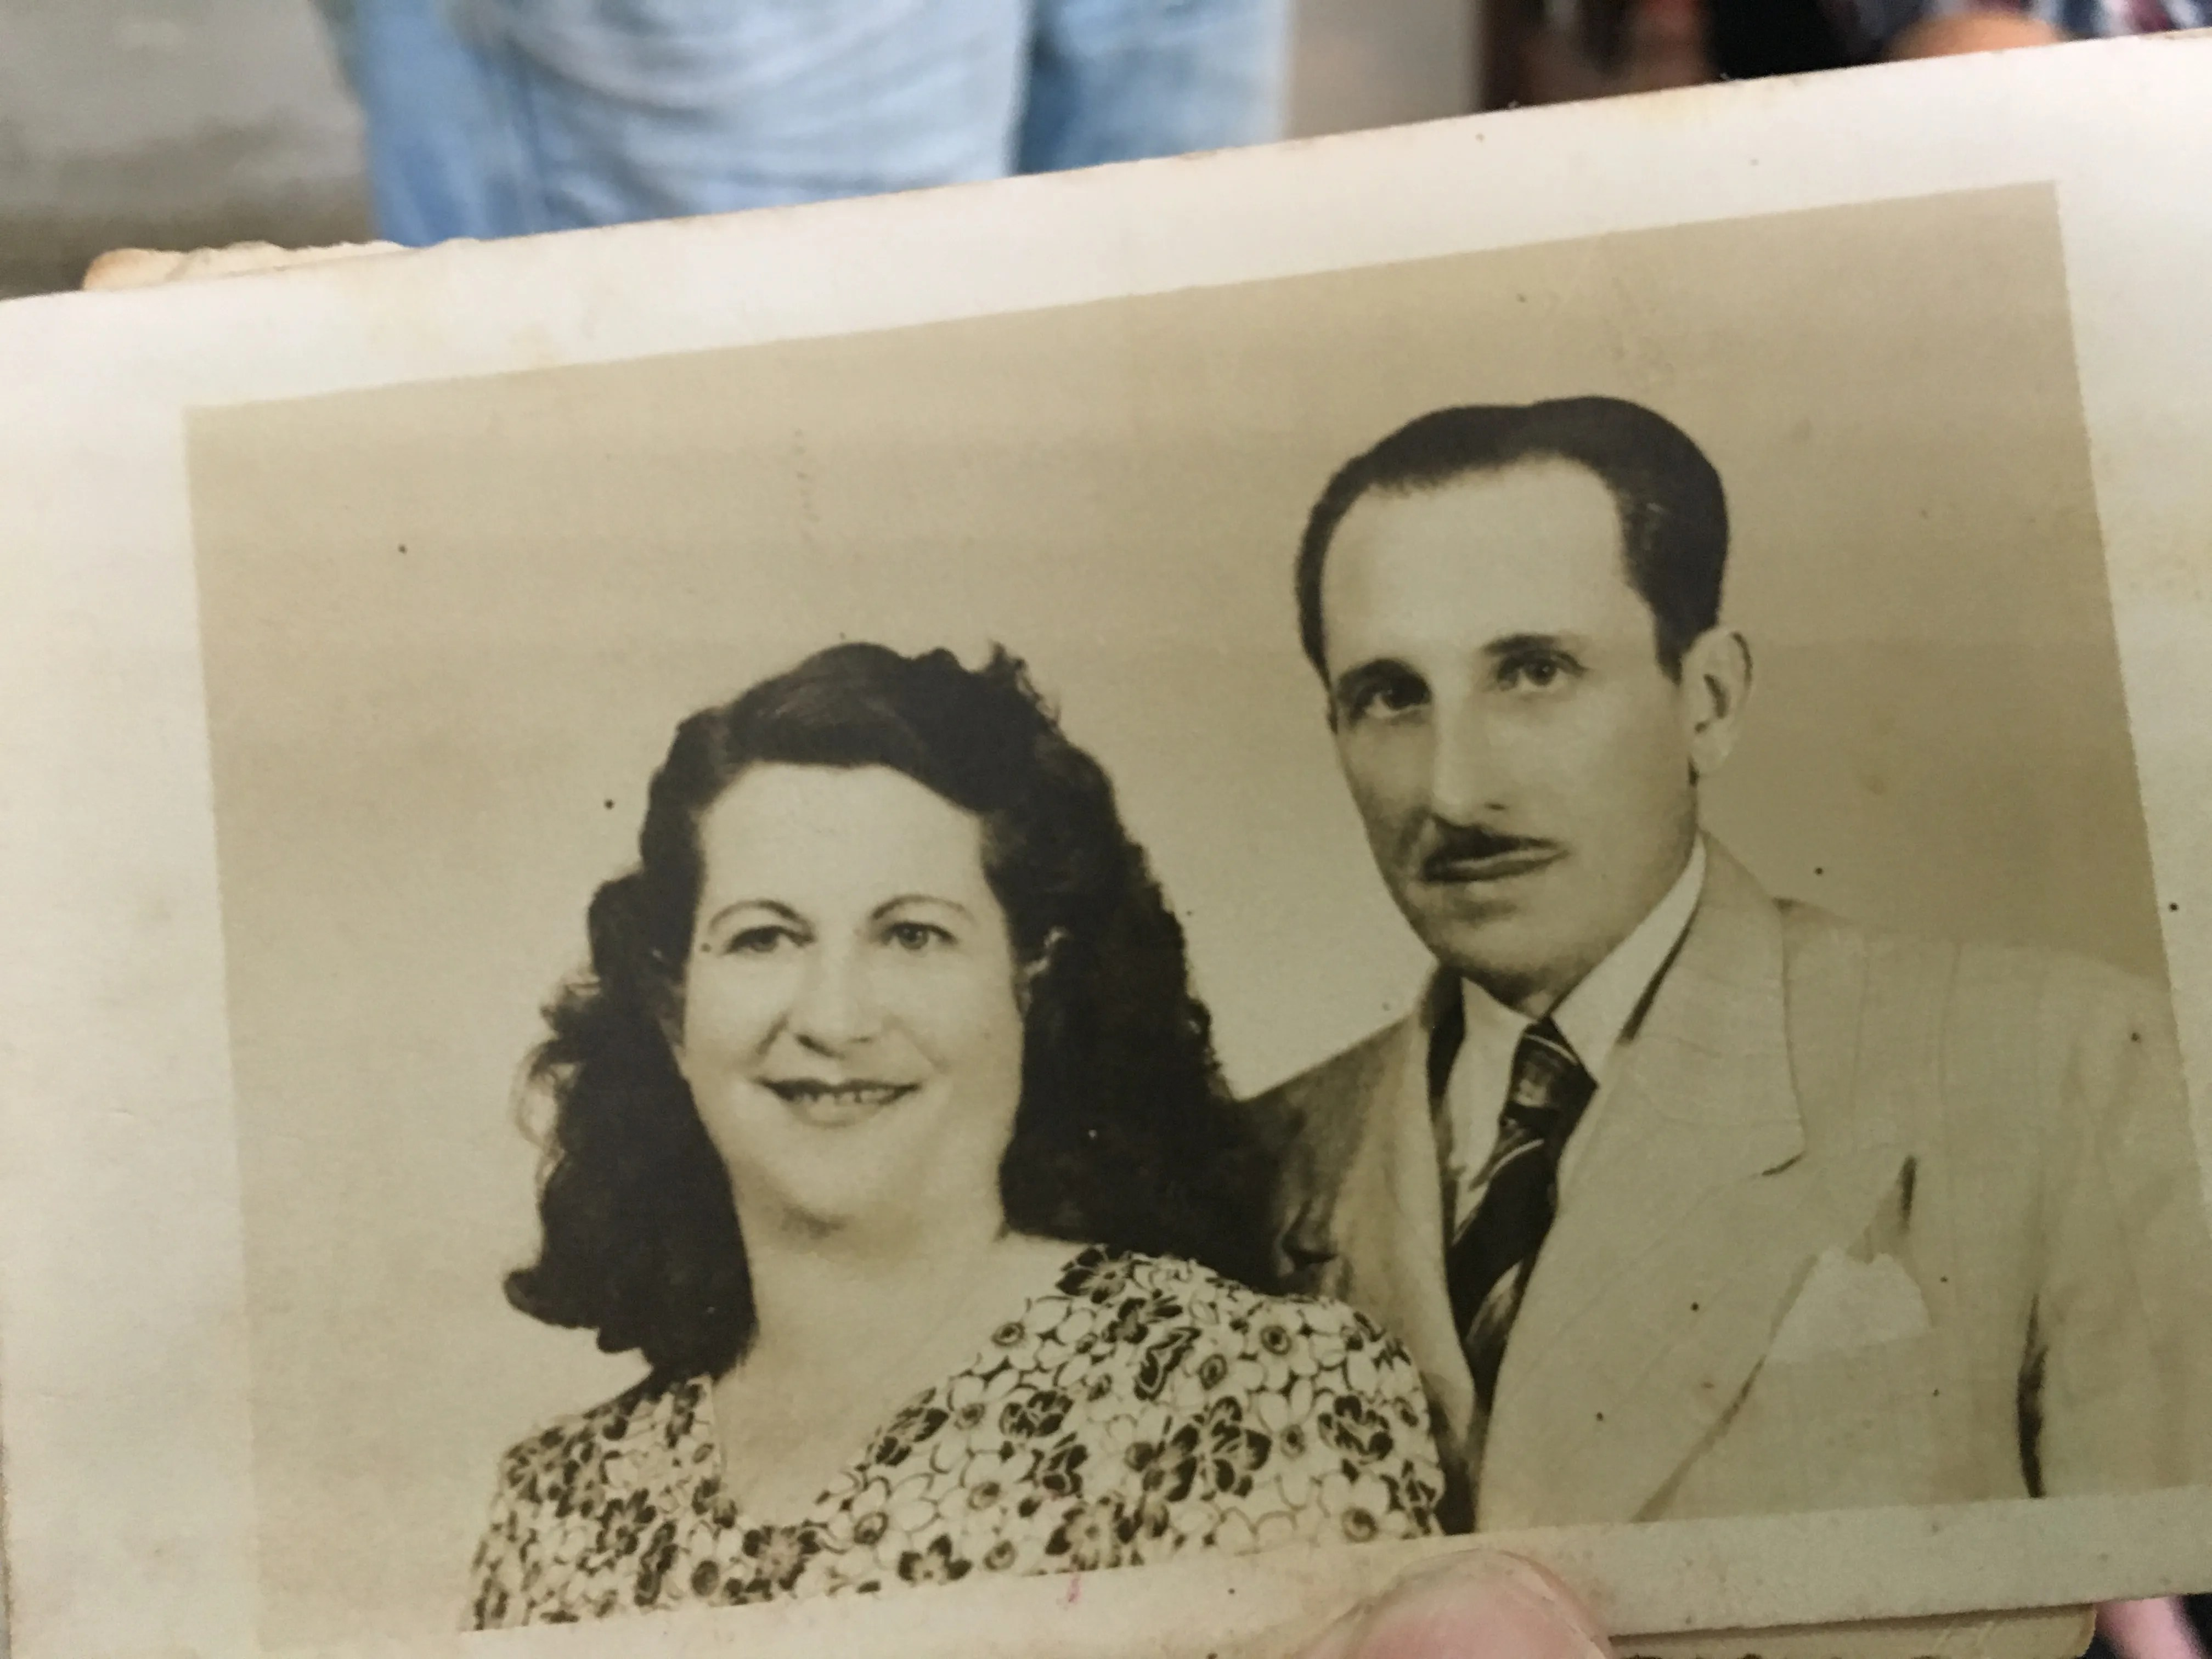 Julia and Marcelino Gonzalez were married in 1924 and lived their life on the family farm in Rodas, Cuba. They stayed behind in Cuba when half of their family left, knowing they were needed to help support other family members on the island.